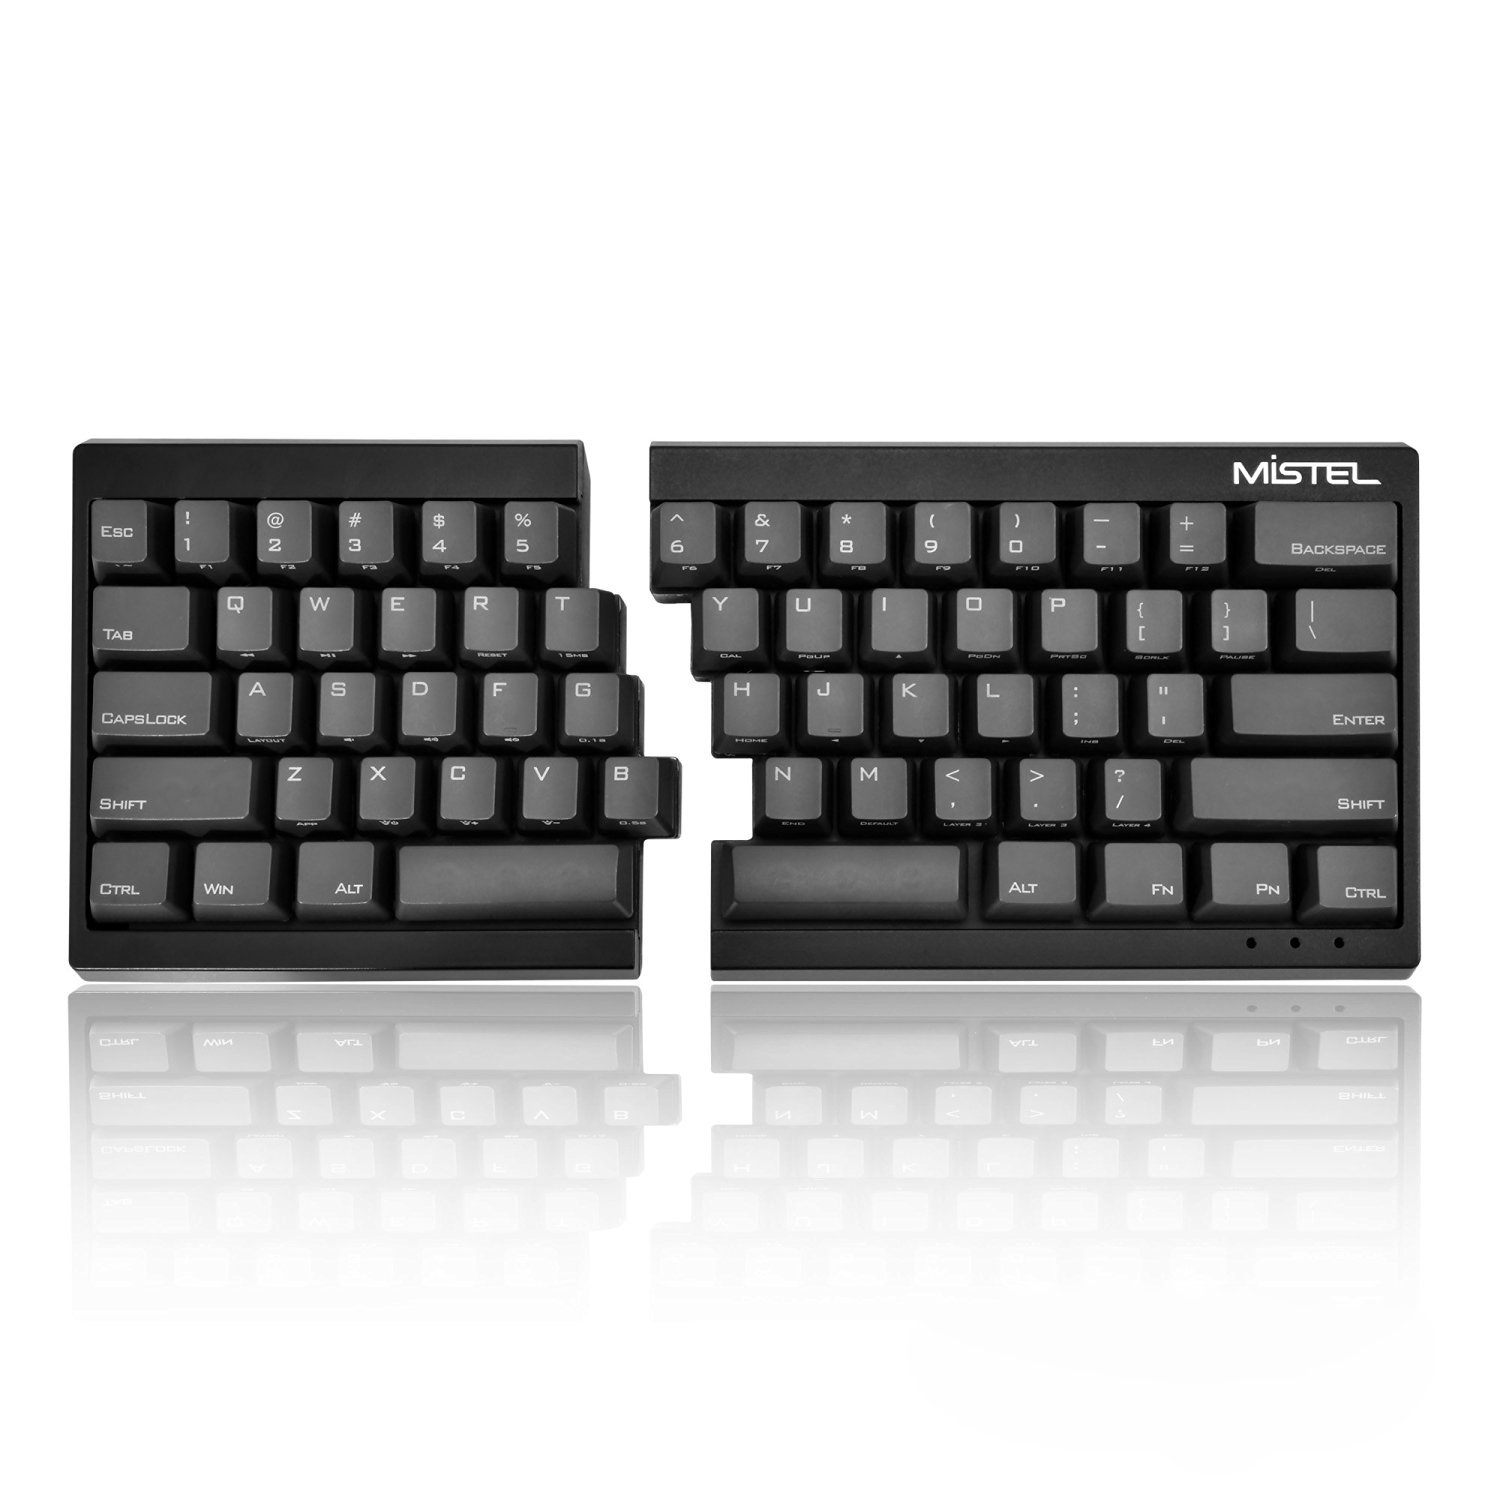 Amazon mechanical keyboard - Amazon Com Mistel Barocco Ergonomic Split Pbt Mechanical Keyboard With Cherry Mx Brown Switches Black Computers Accessories